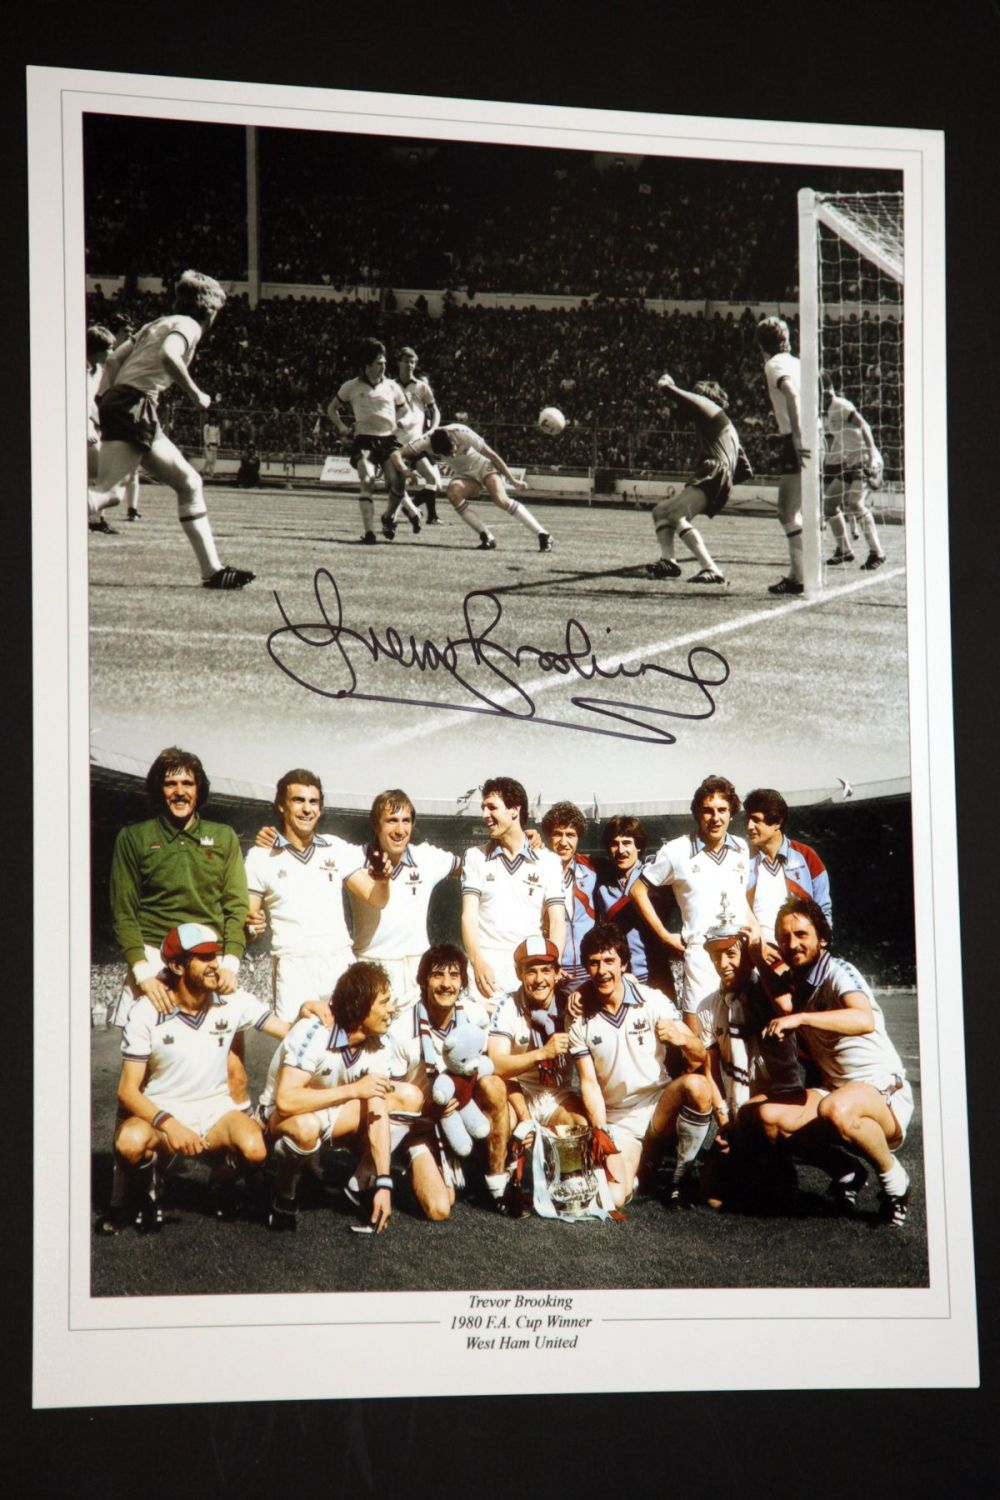 Trevor Brooking Signed West Ham United 12x16 Football Photograph : D